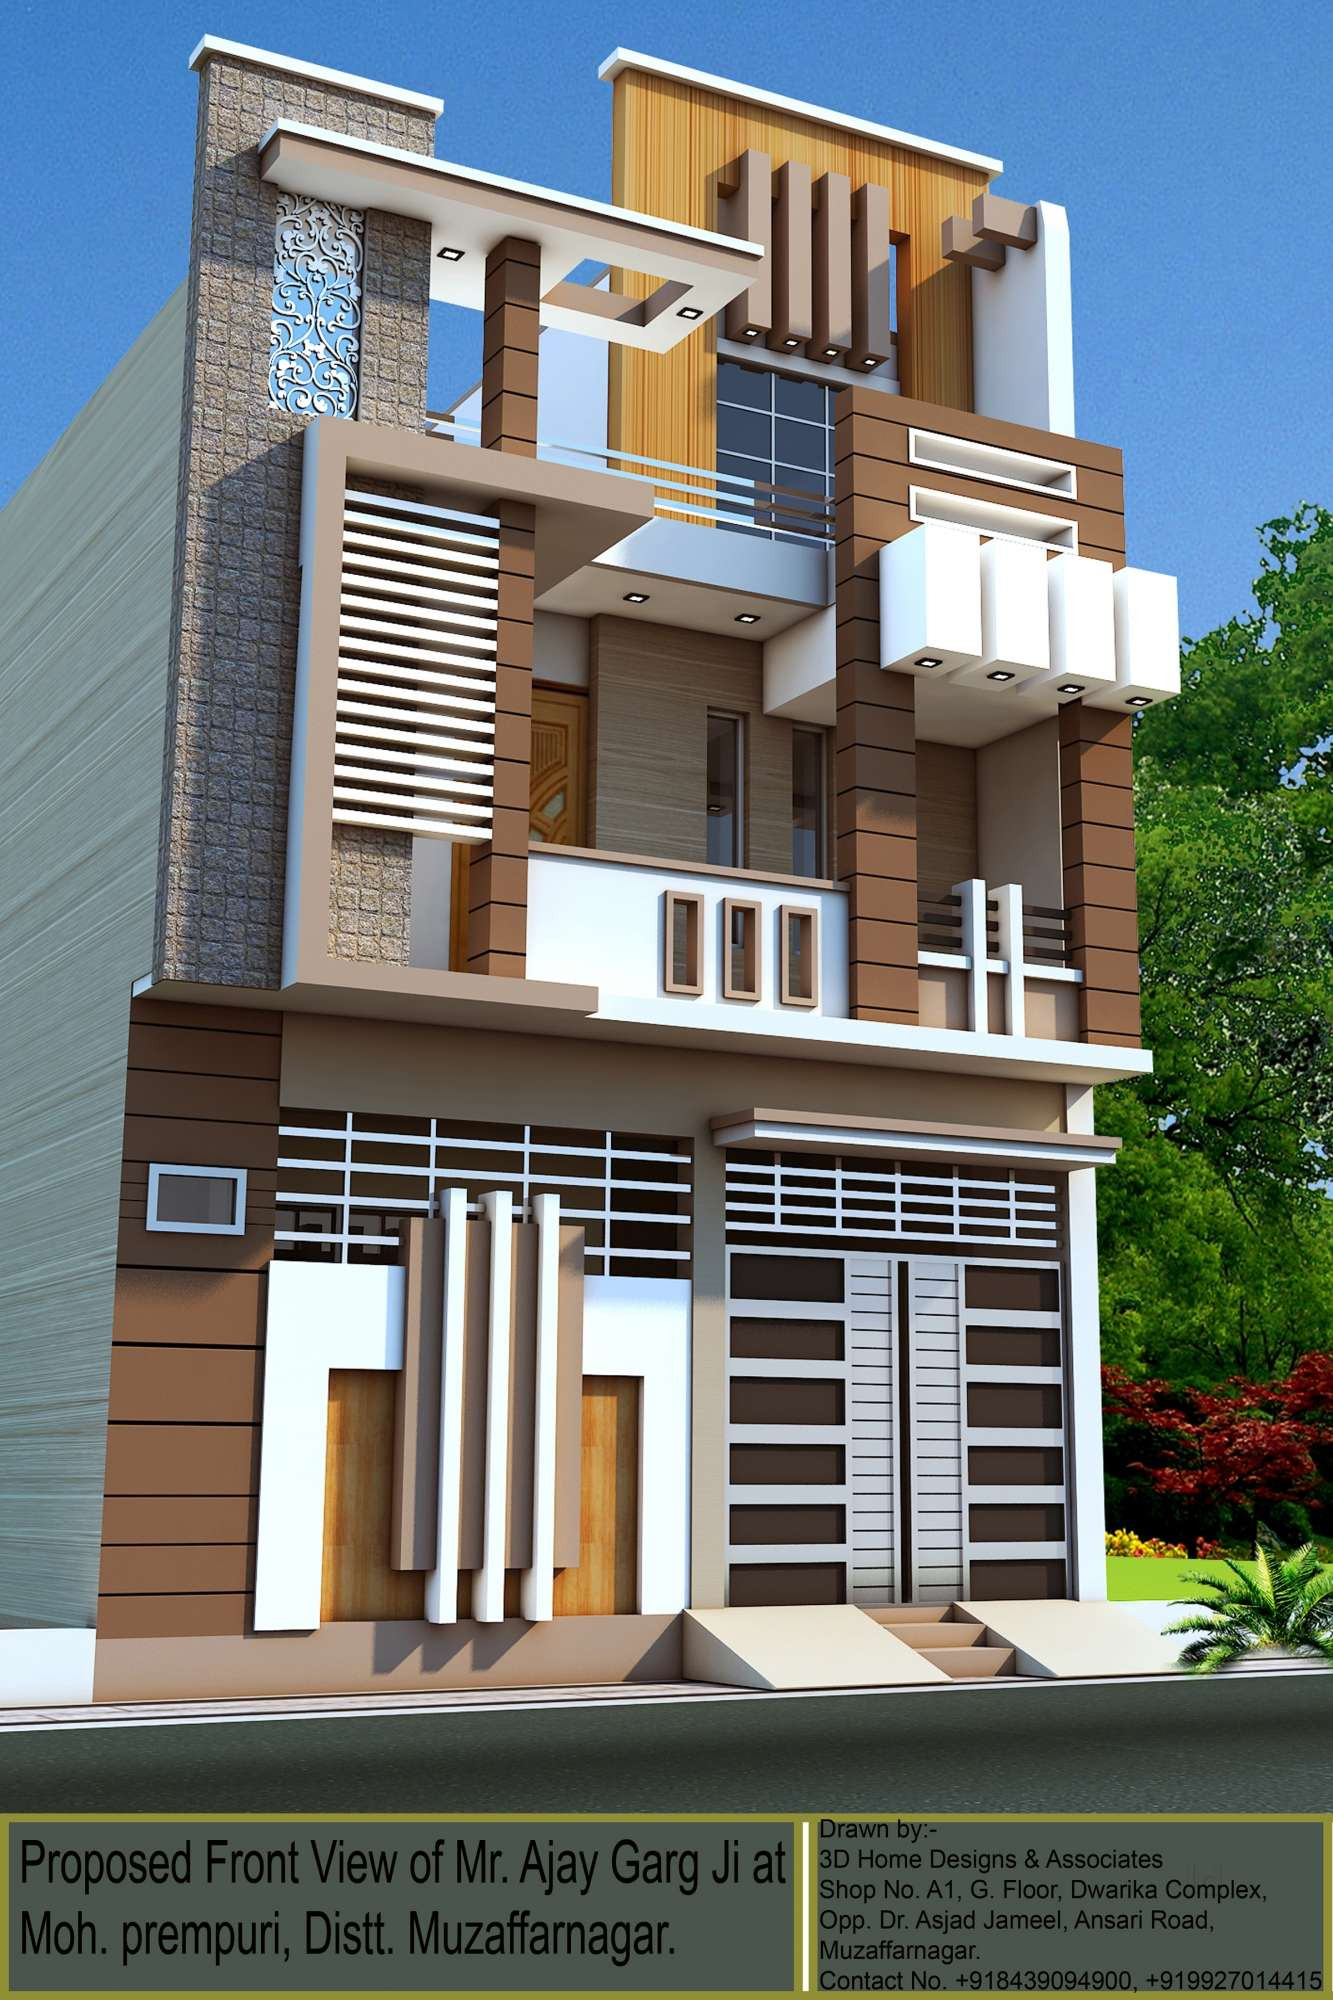 3d home designs and associates muzaffar nagar city muzaffarnagar estate agents 7ewviww